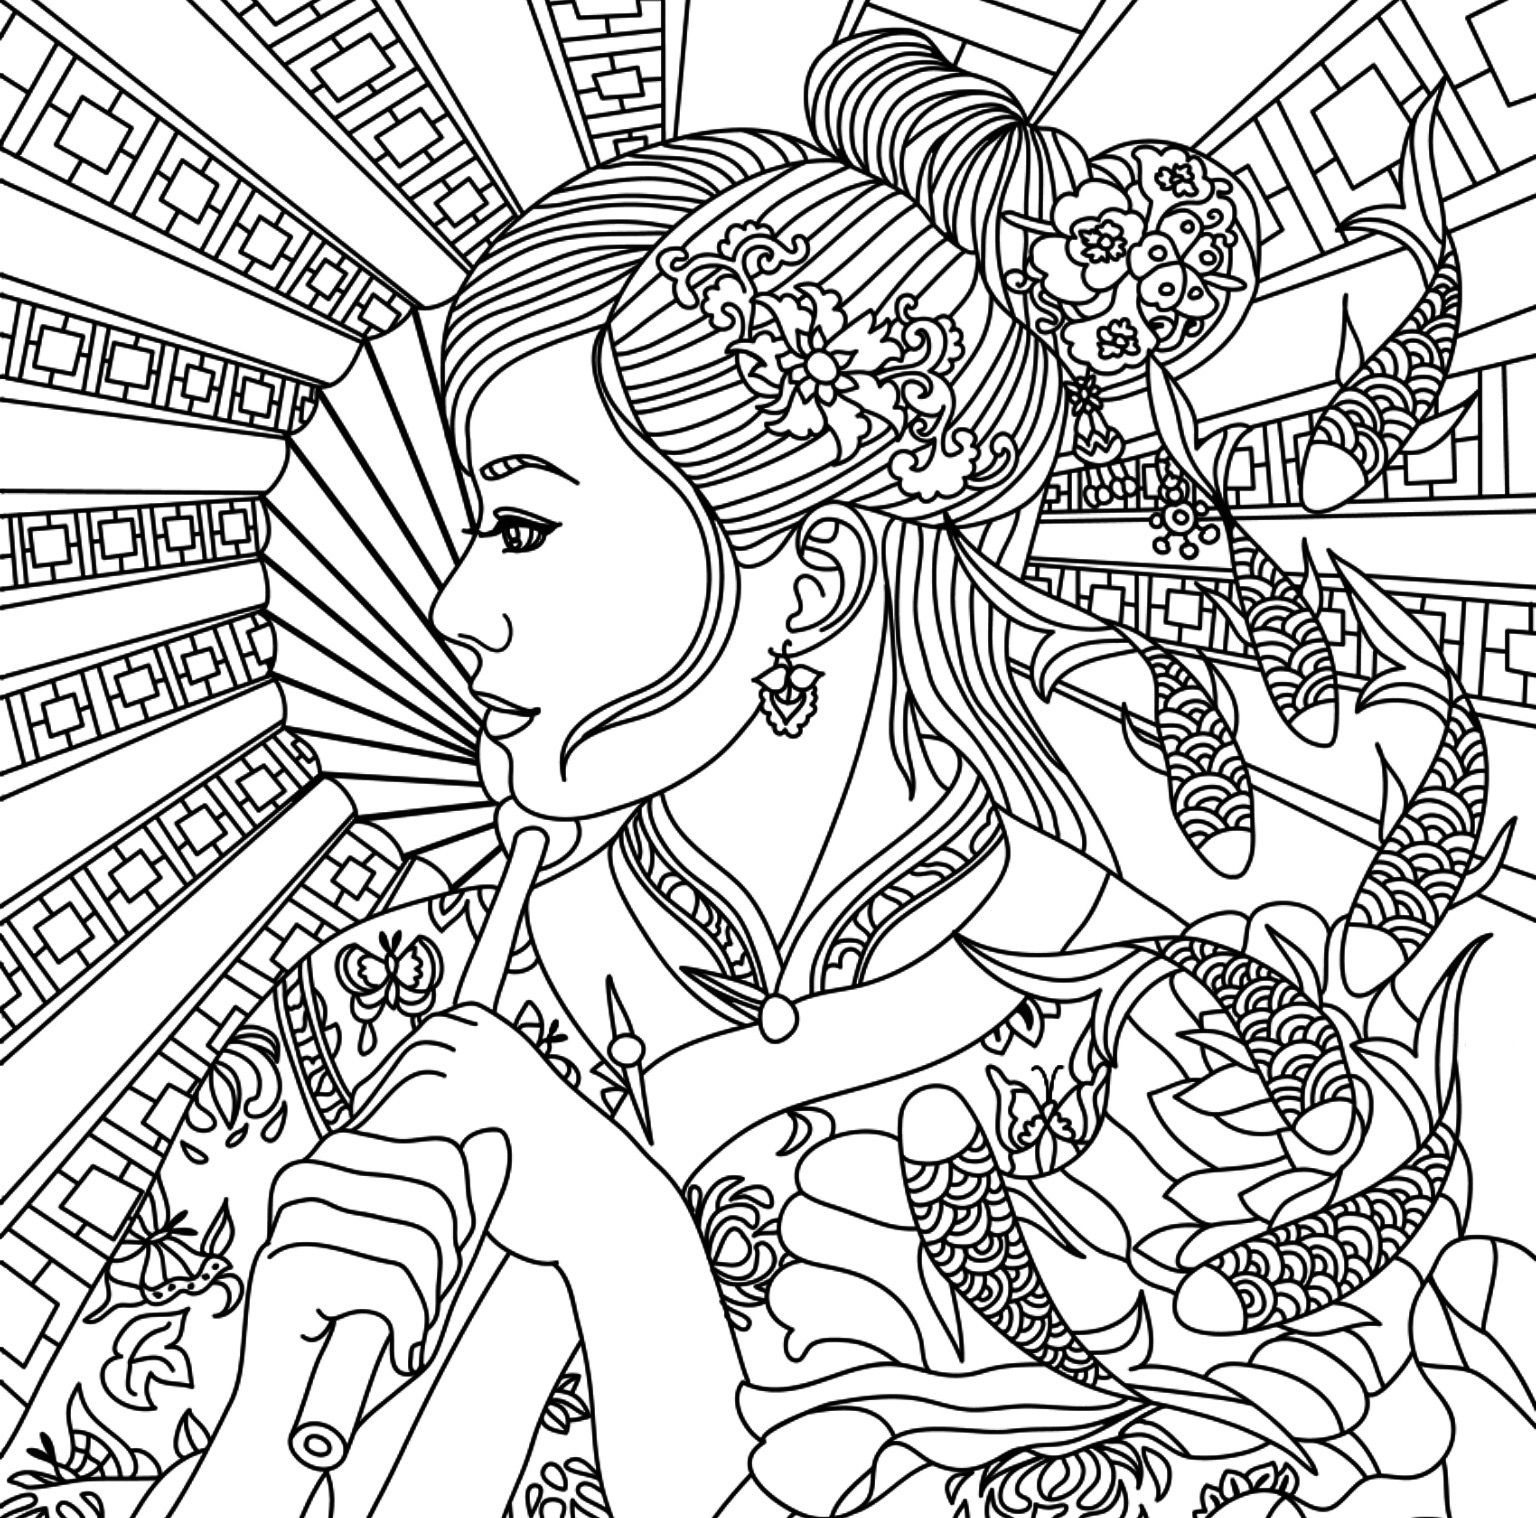 1536x1518 Luxury Asian Beauty Adult Coloring Page Free Coloring Pages